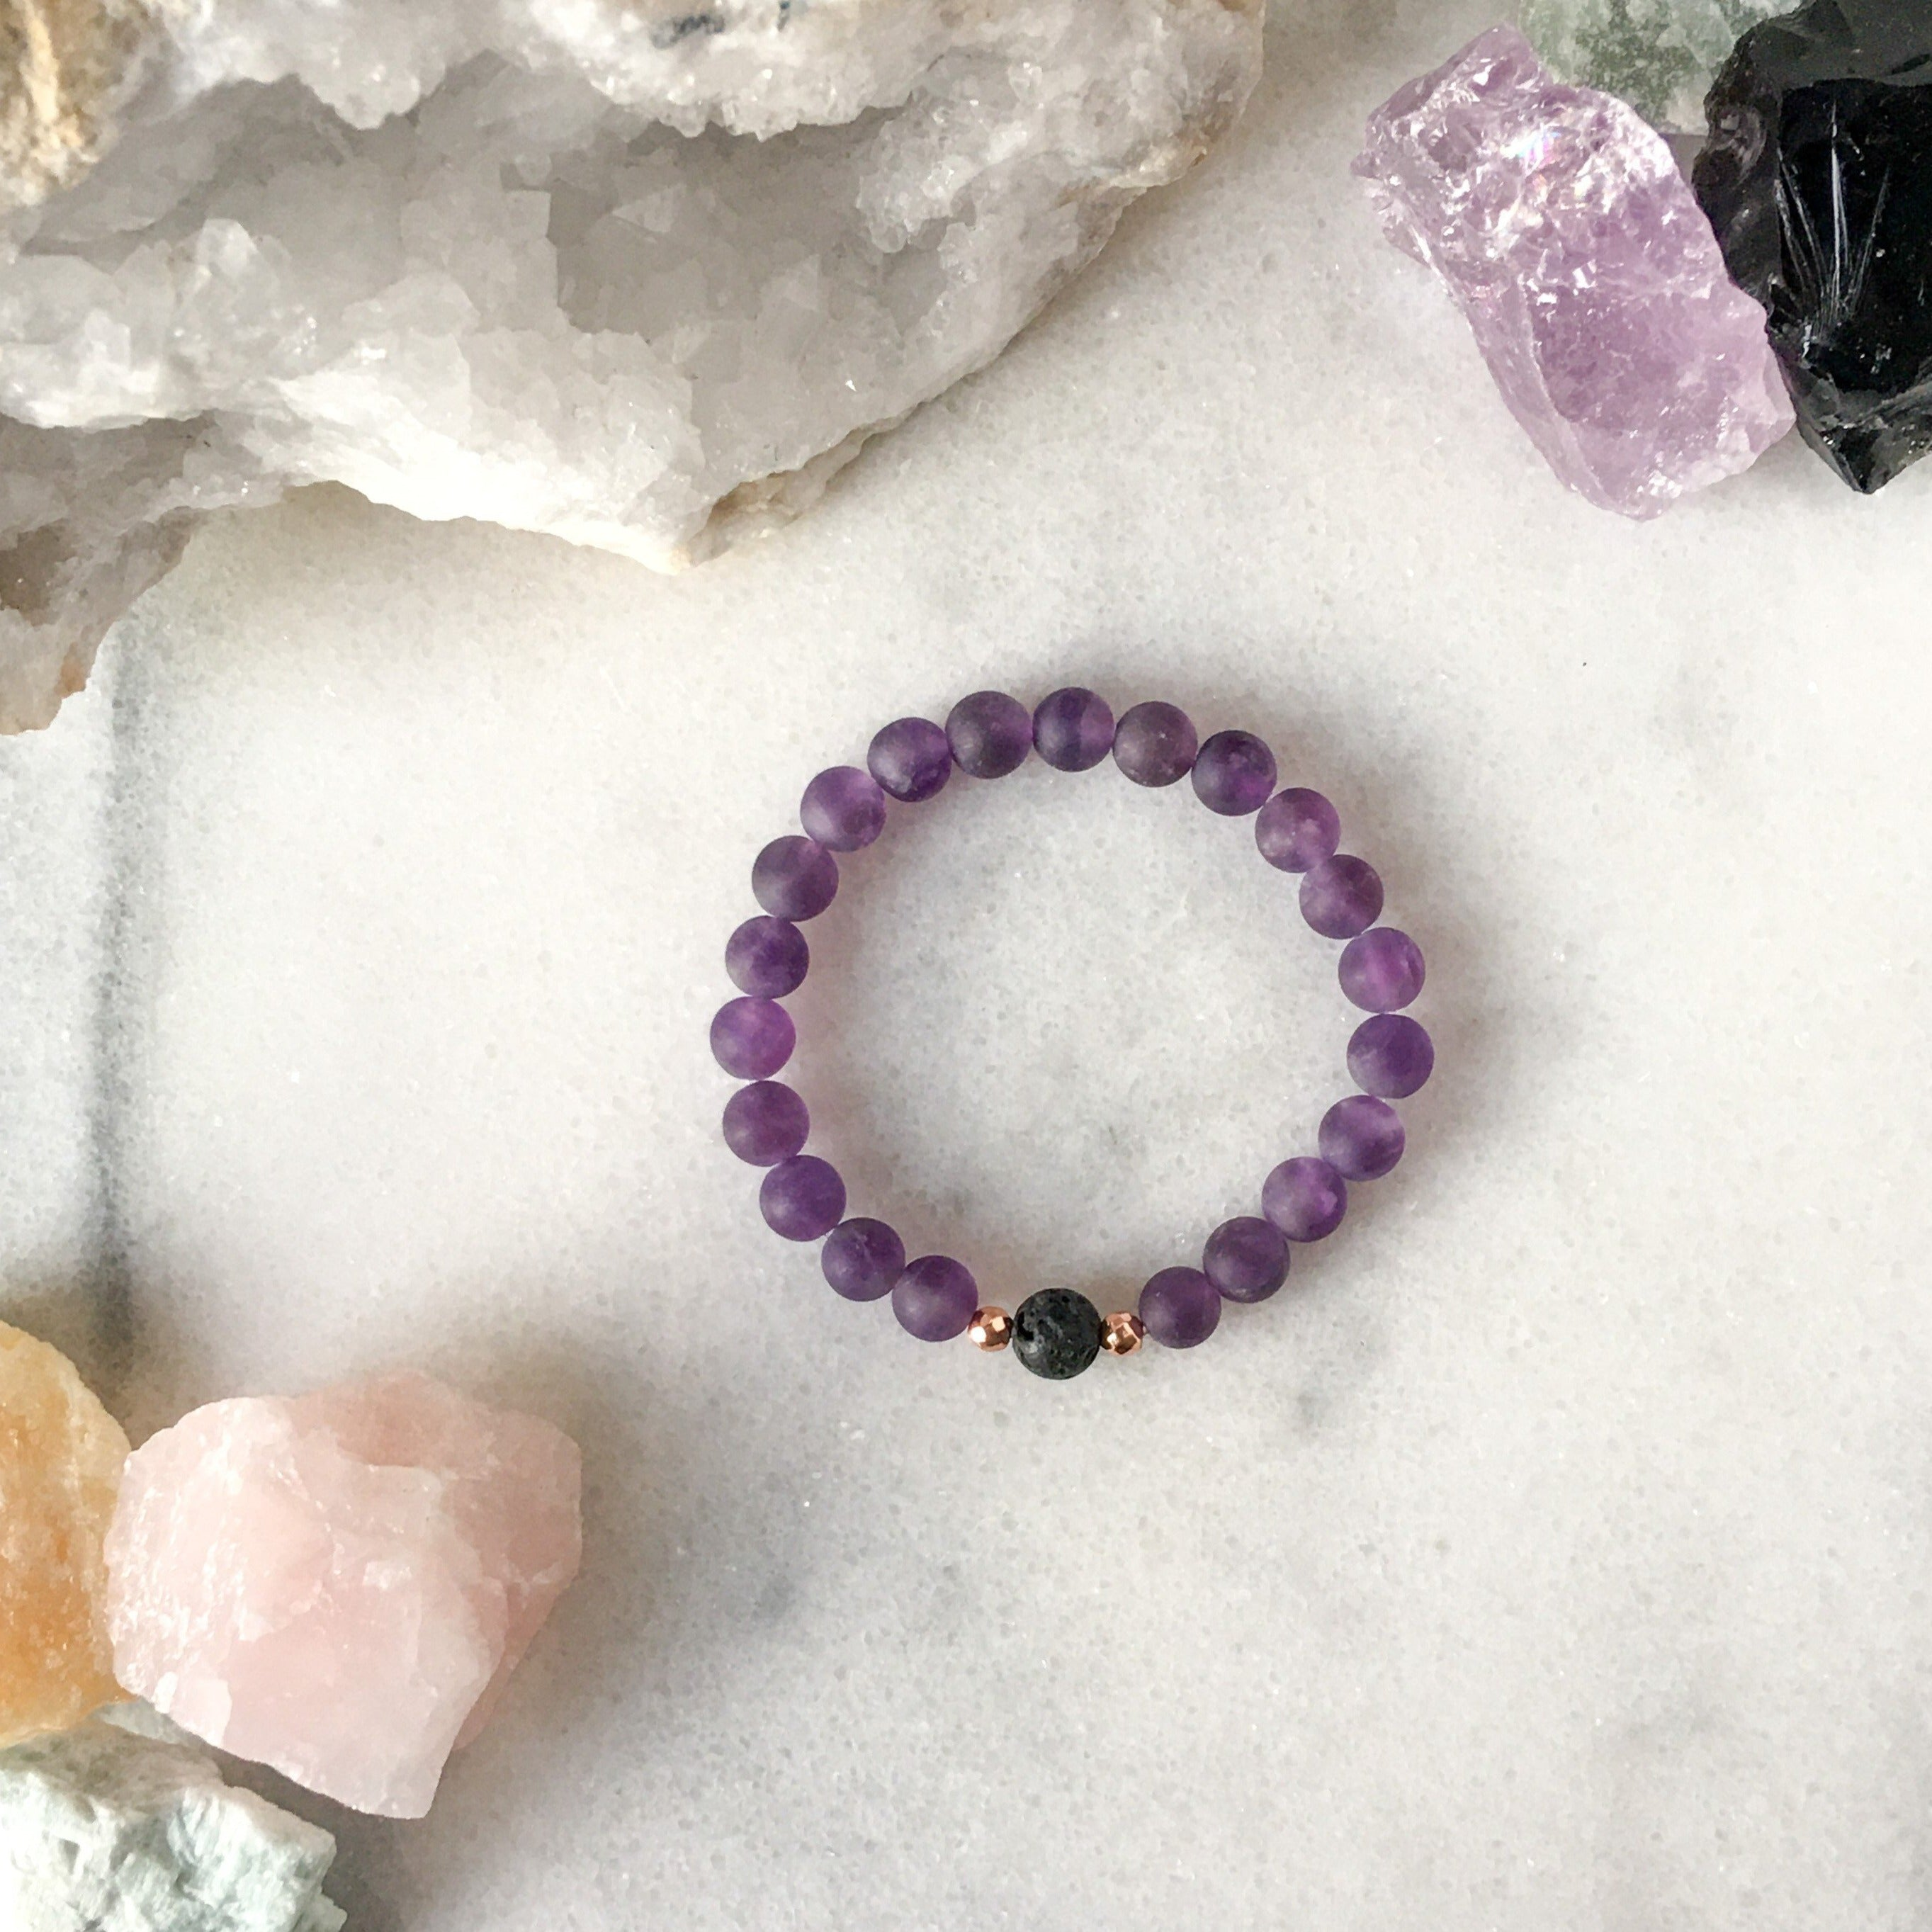 Simplicity Collection - Amethyst + Lava Stone Diffuser Bracelet - Beneva Designs